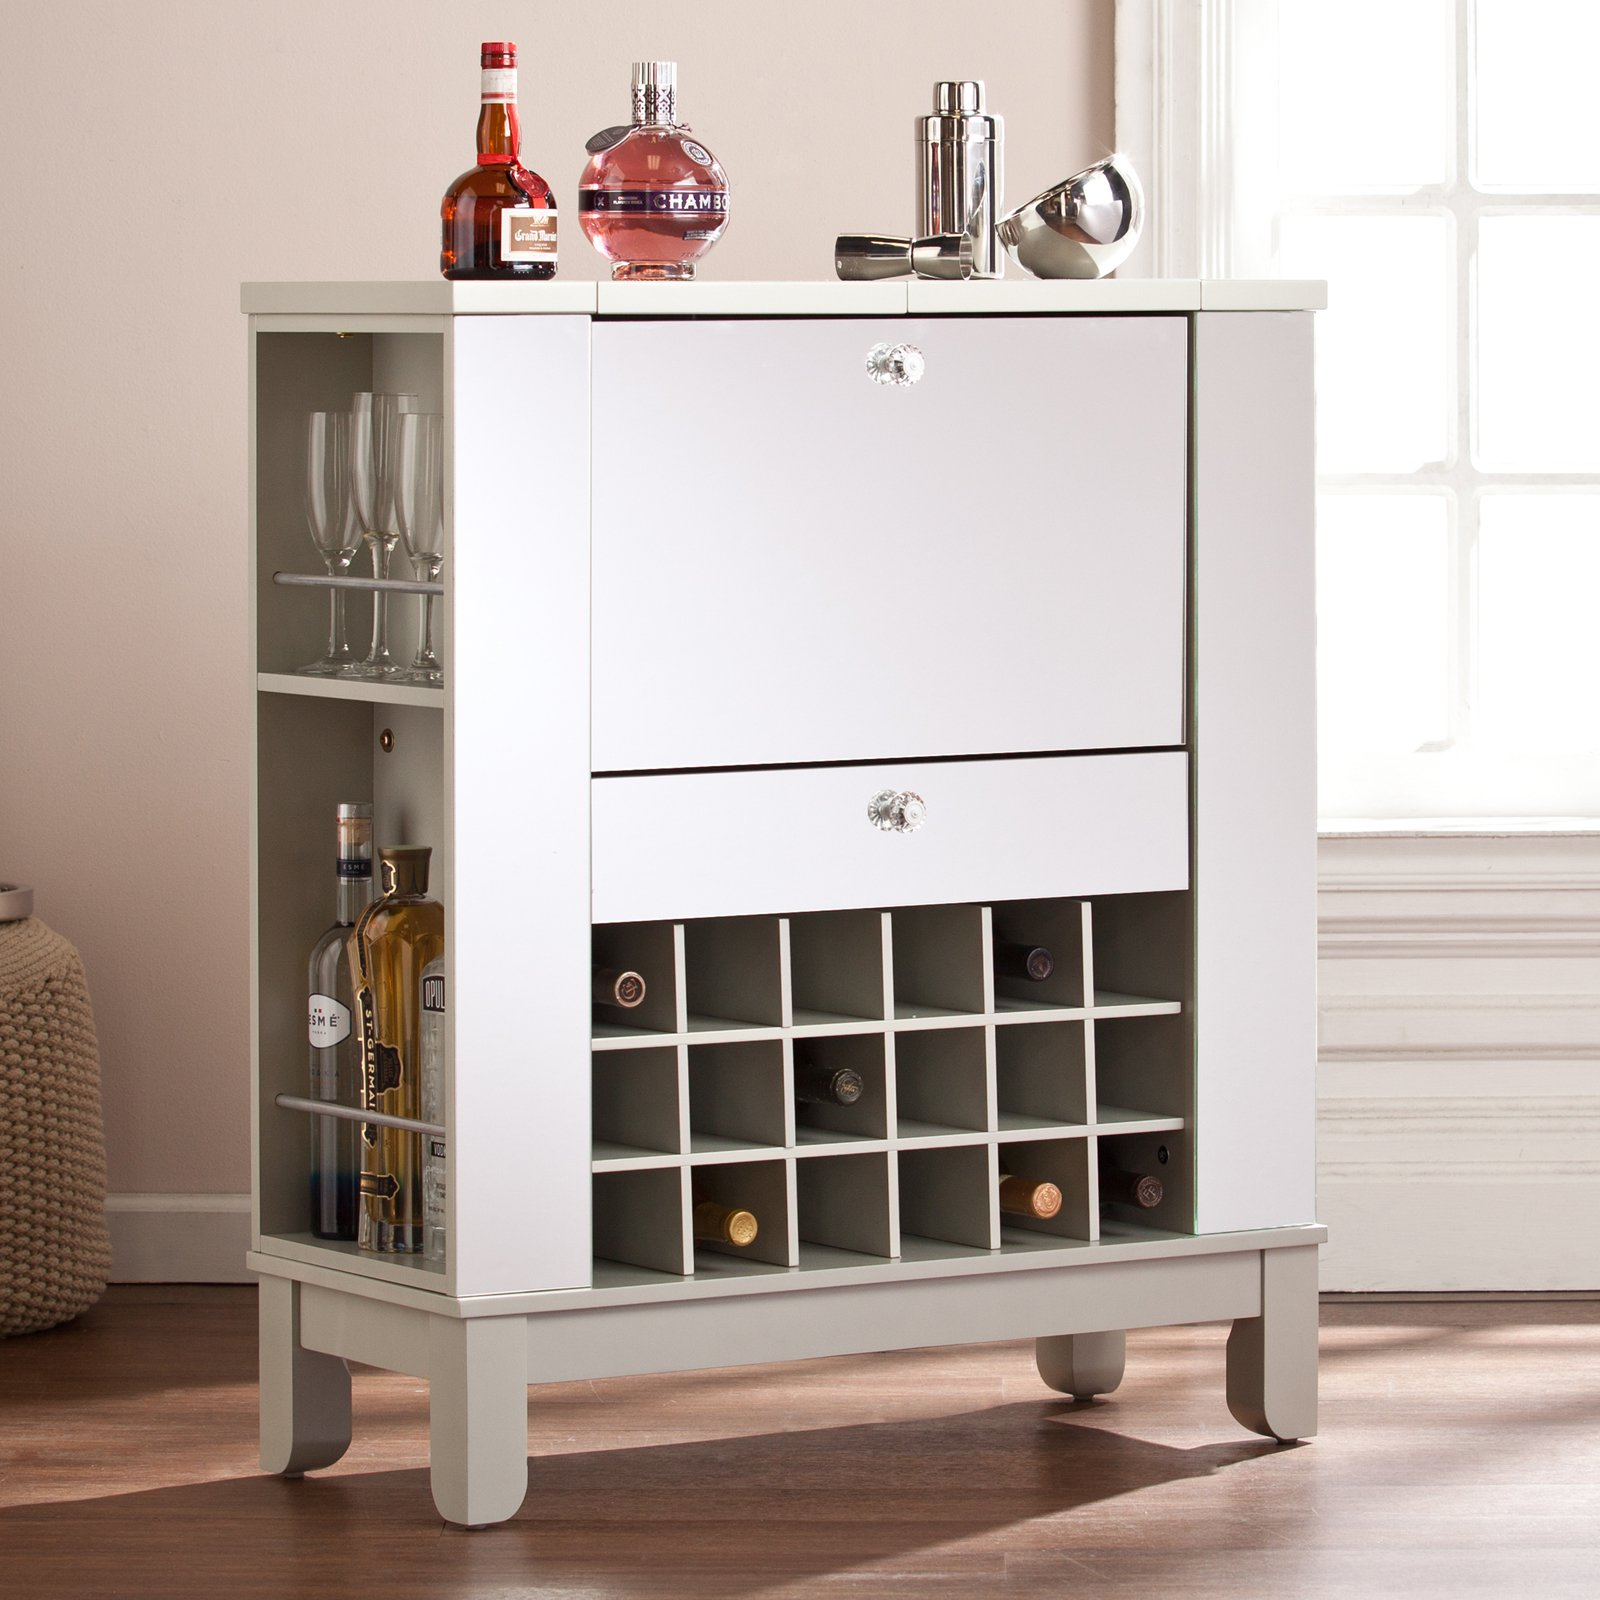 Southern Enterprises Mirage Mirrored Fold-Out Wine/Bar Cabinet